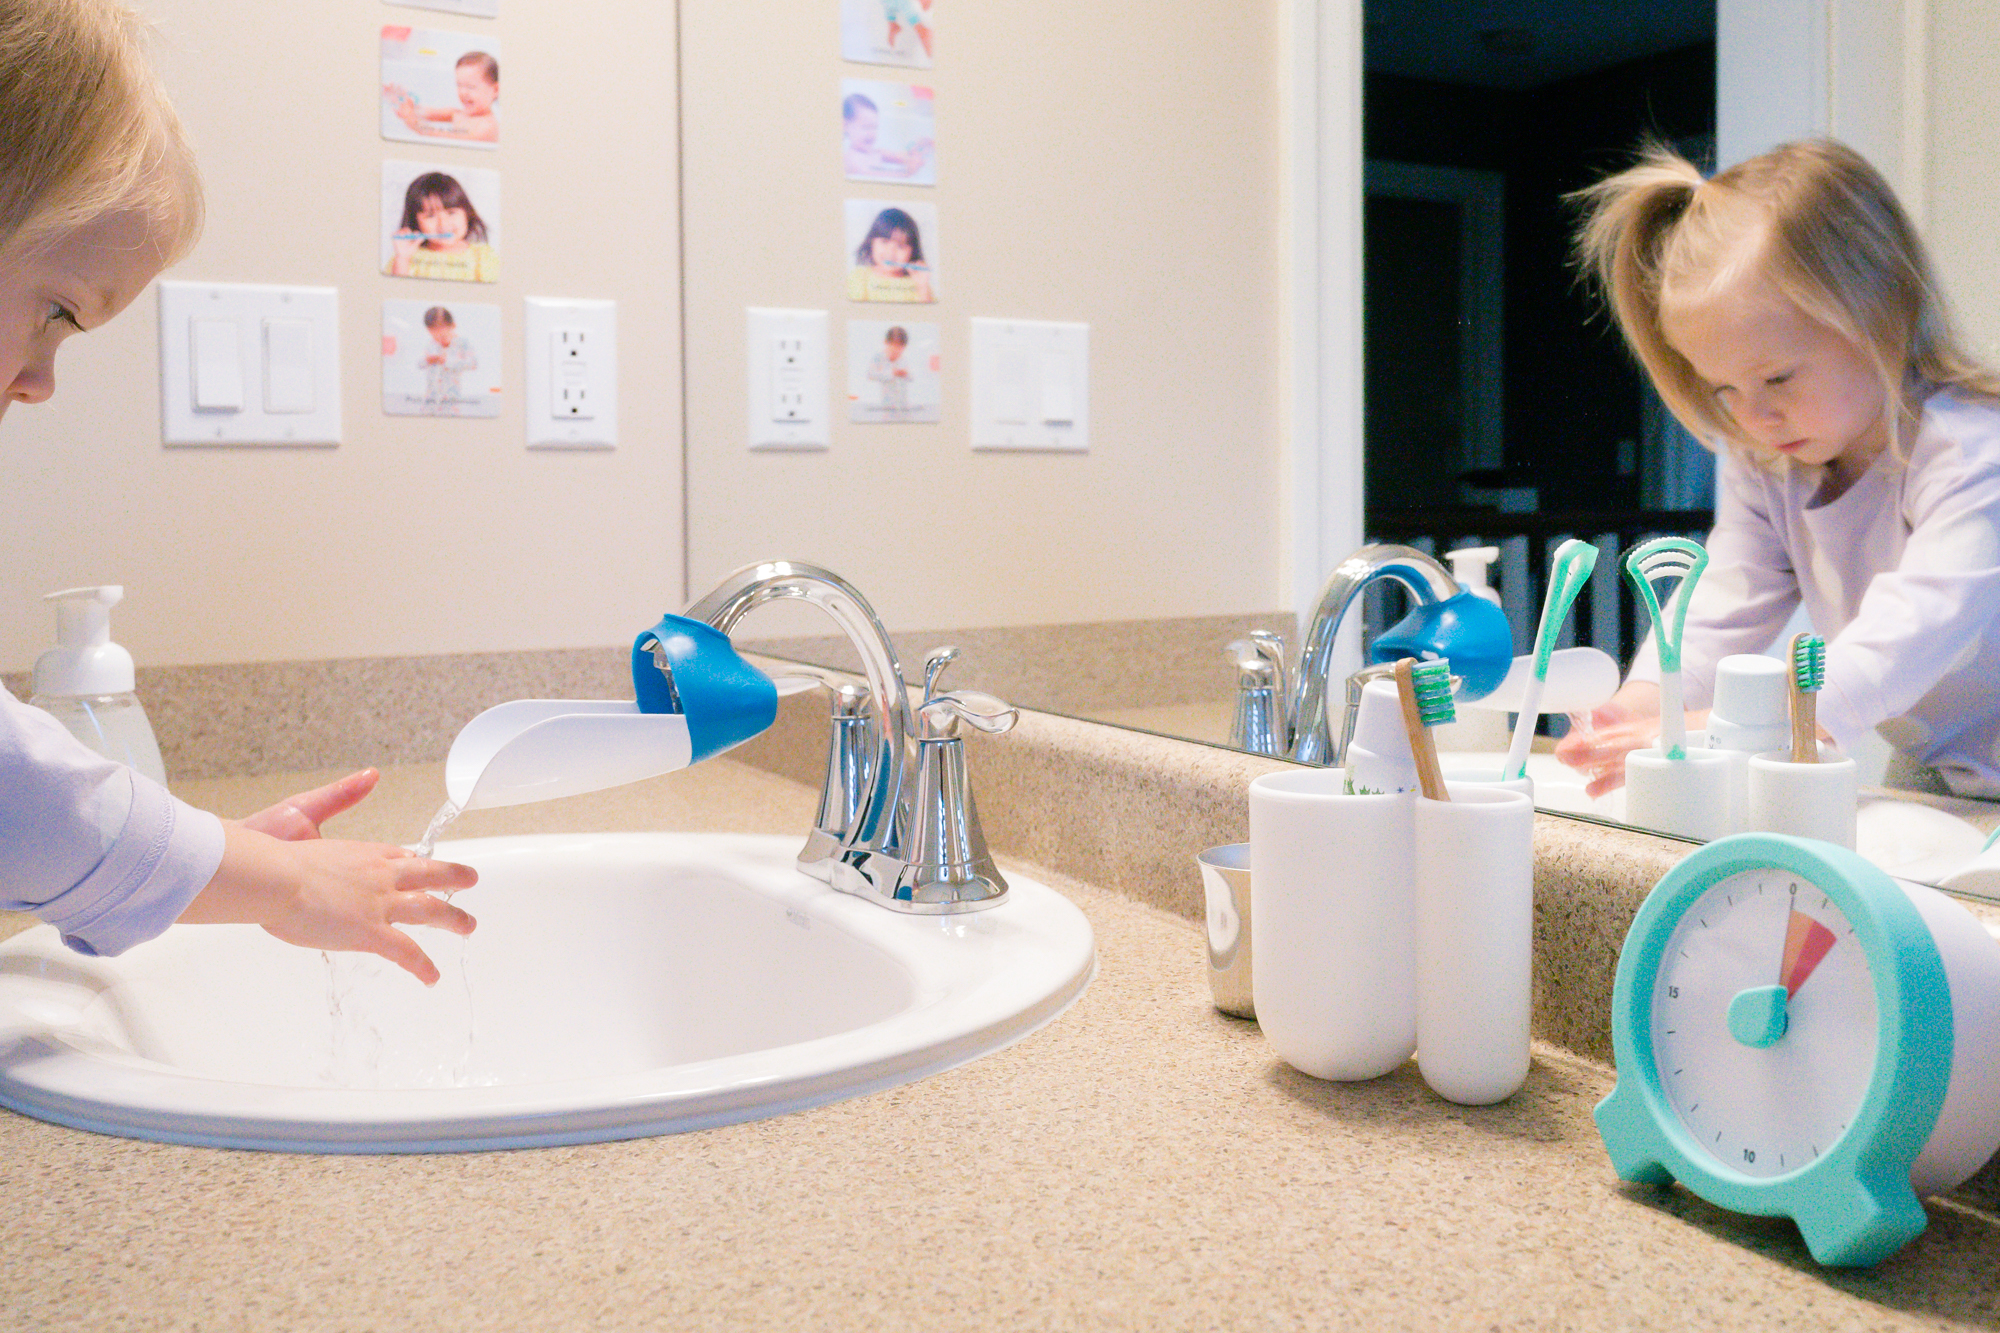 Young child washing their hands in a bathroom sink